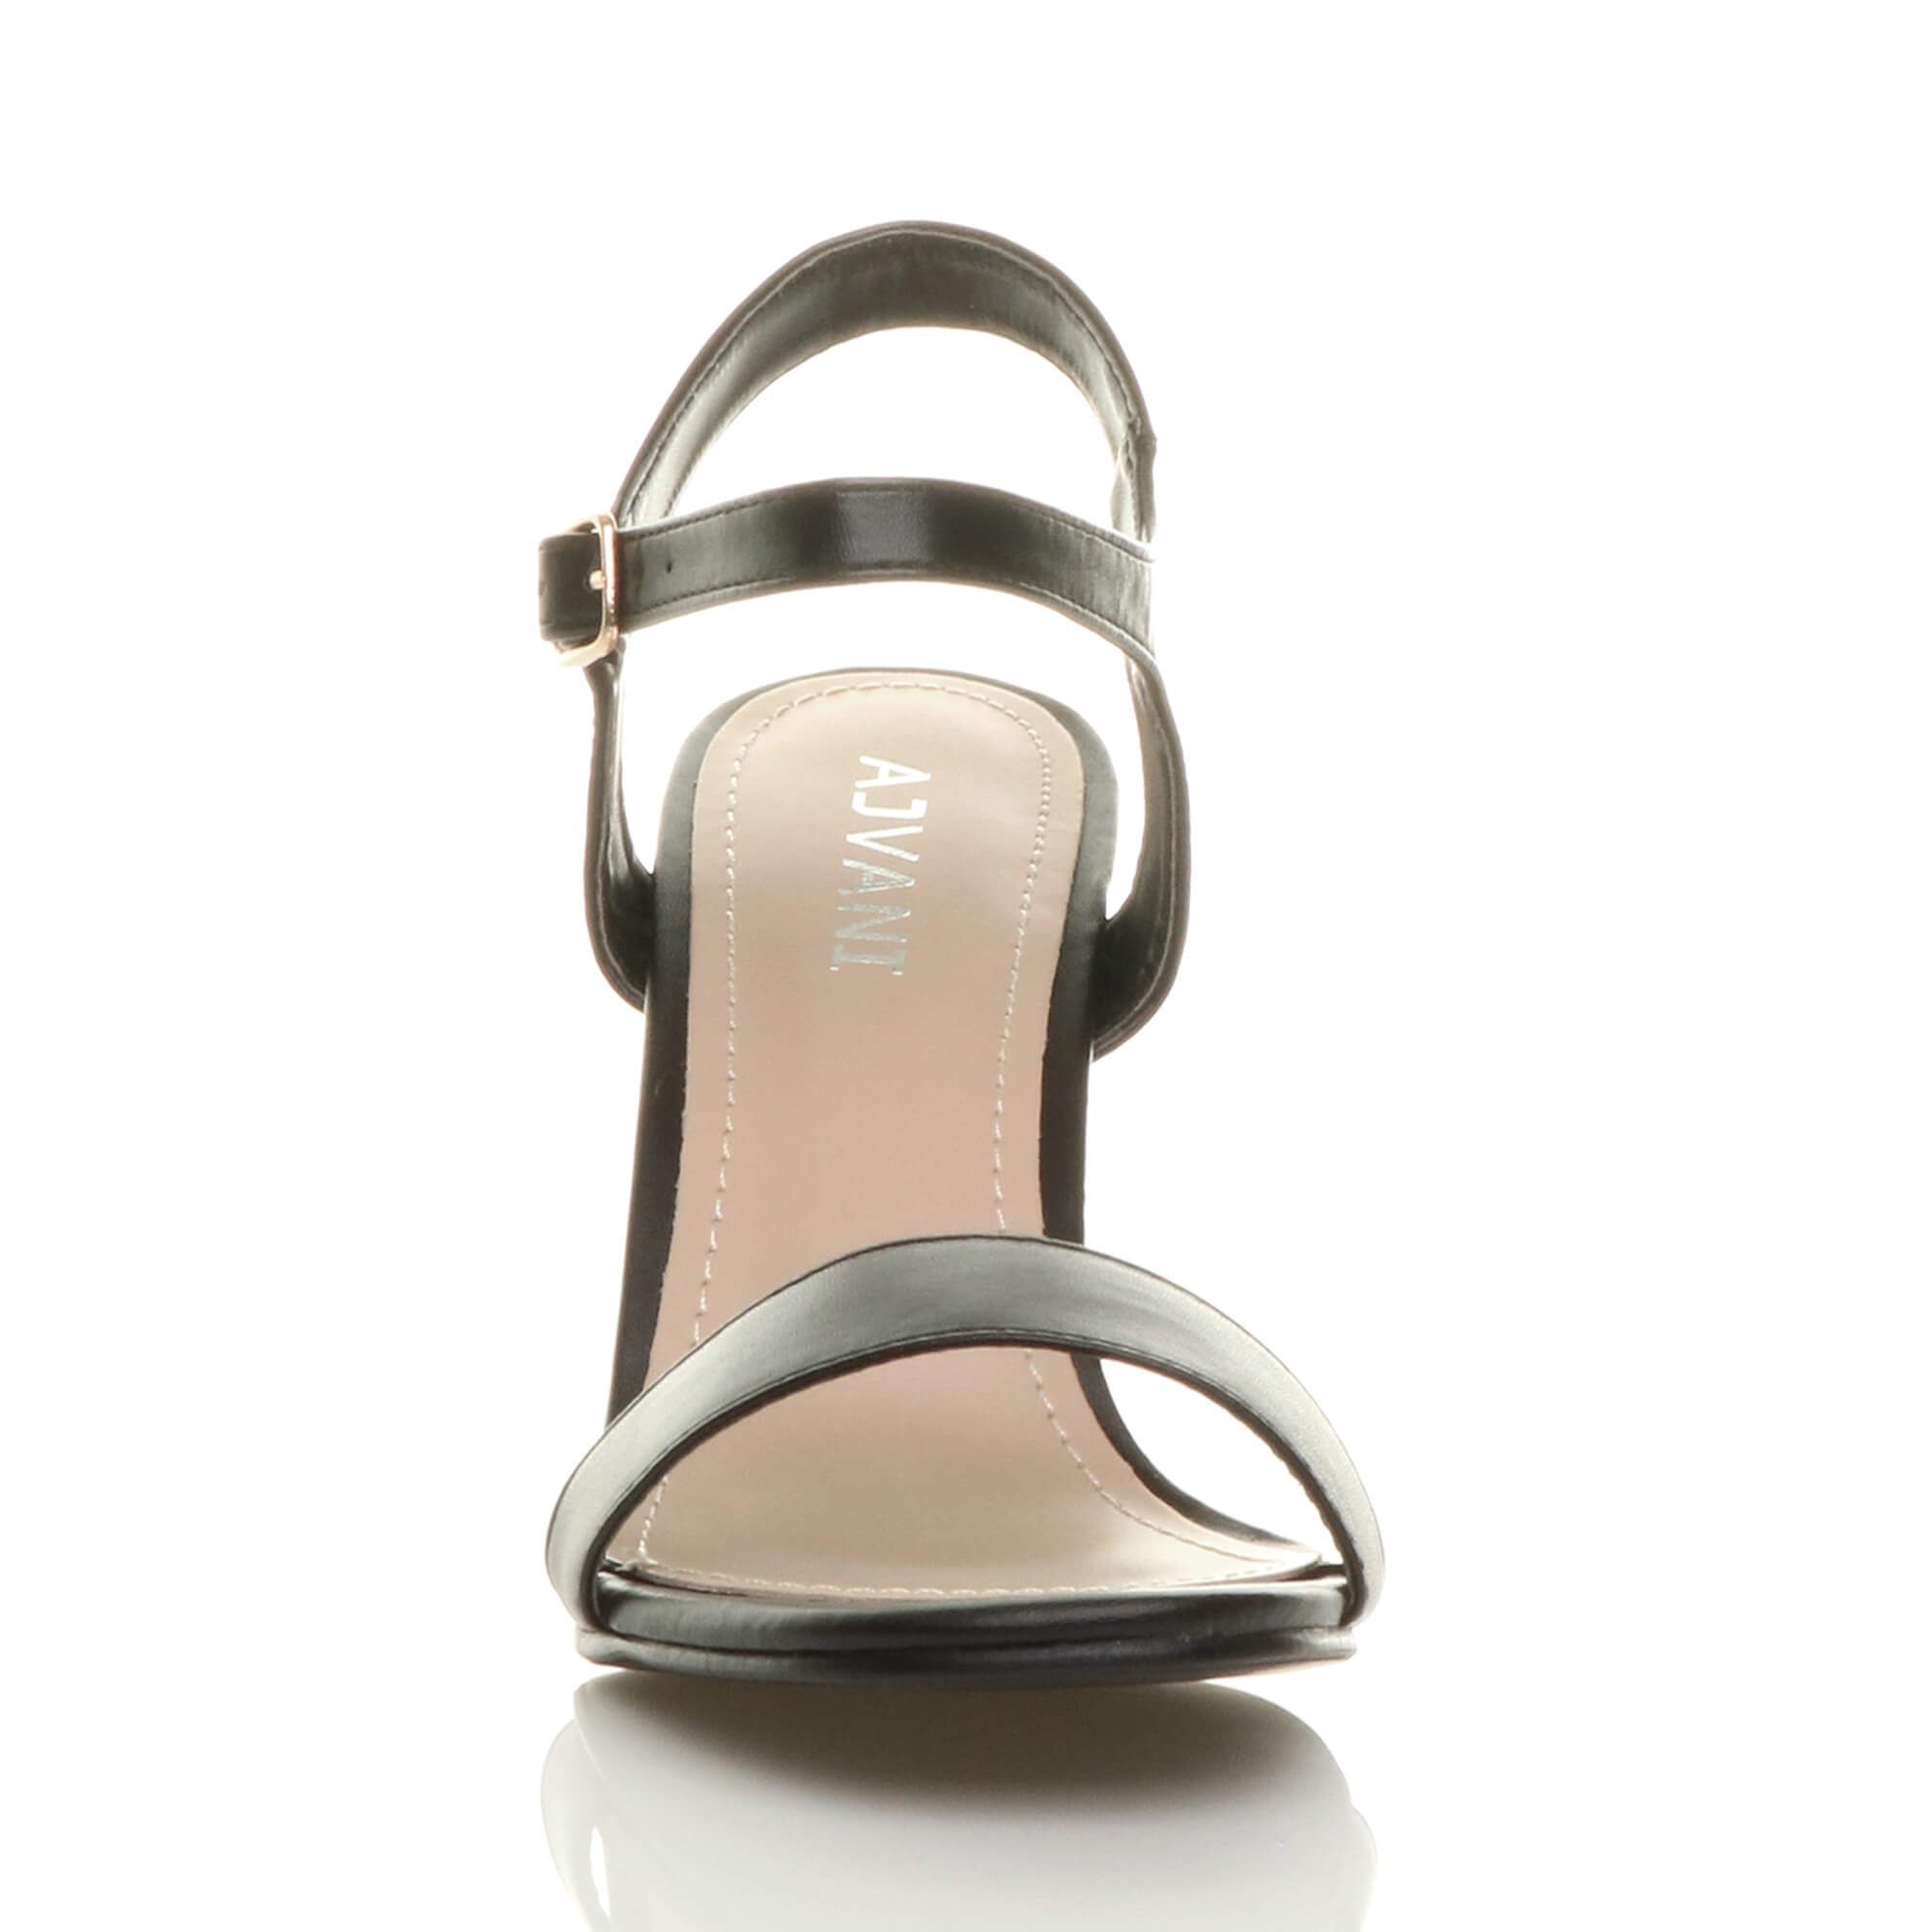 WOMENS-LADIES-HIGH-HEEL-BUCKLE-STRAPPY-BASIC-BARELY-THERE-SANDALS-SHOES-SIZE thumbnail 6